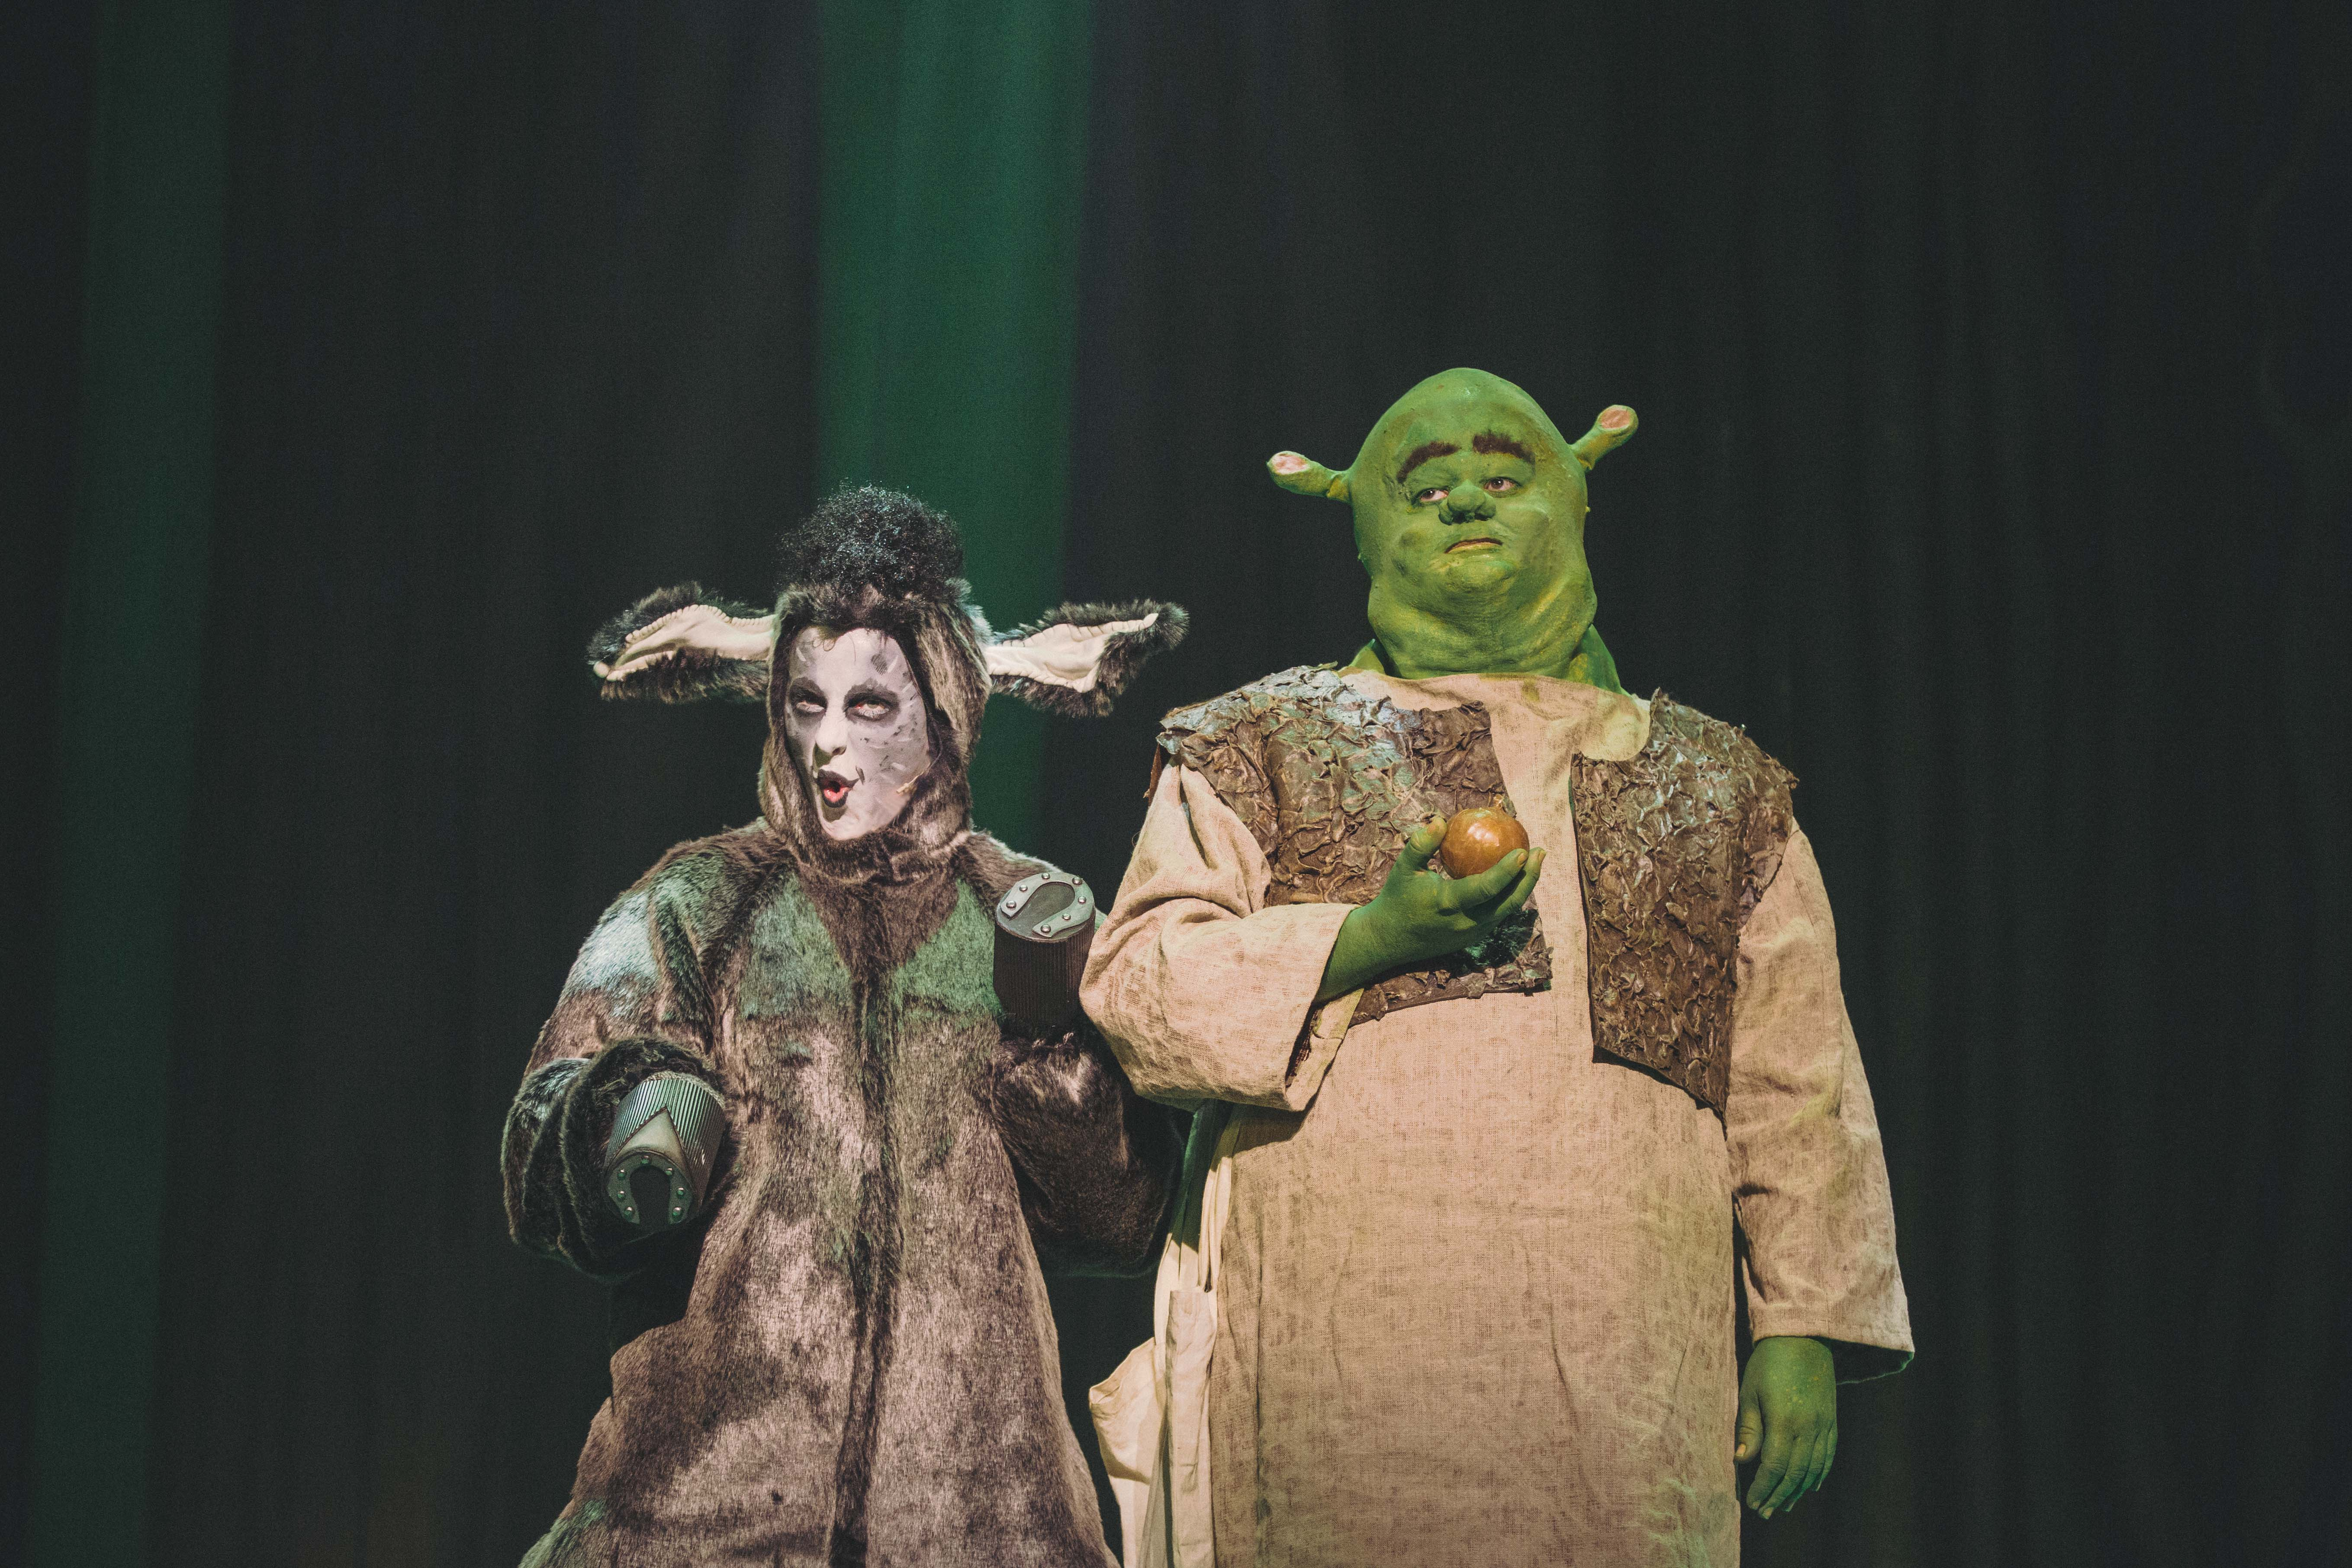 Audiences gave the amateur production of Shrek the Musical a standing ovation.